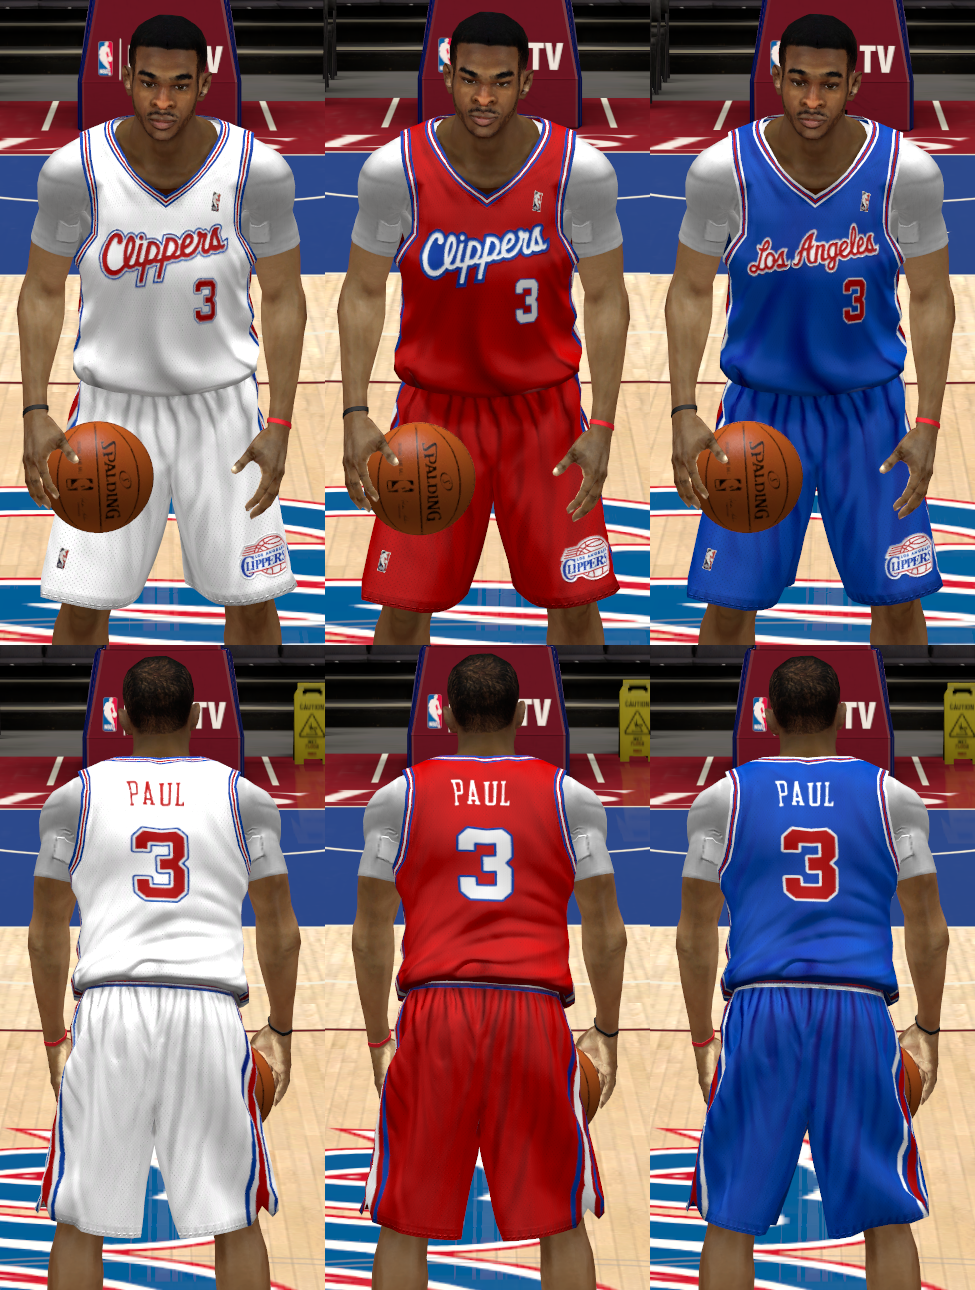 1990s Los Angeles Clippers Uniforms